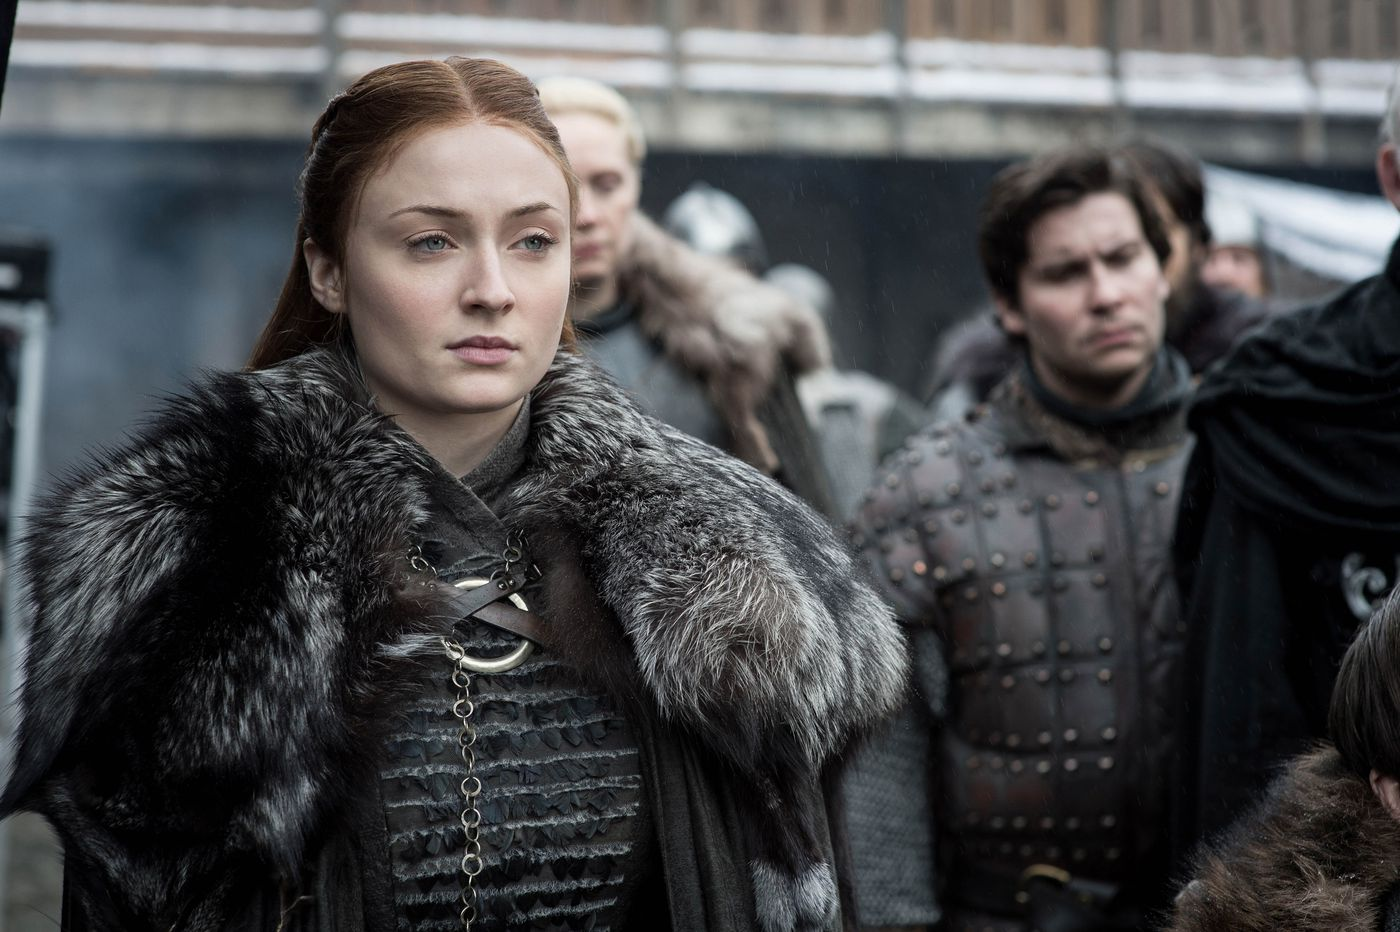 'Game of Thrones': The Season 8 premiere (with spoilers)